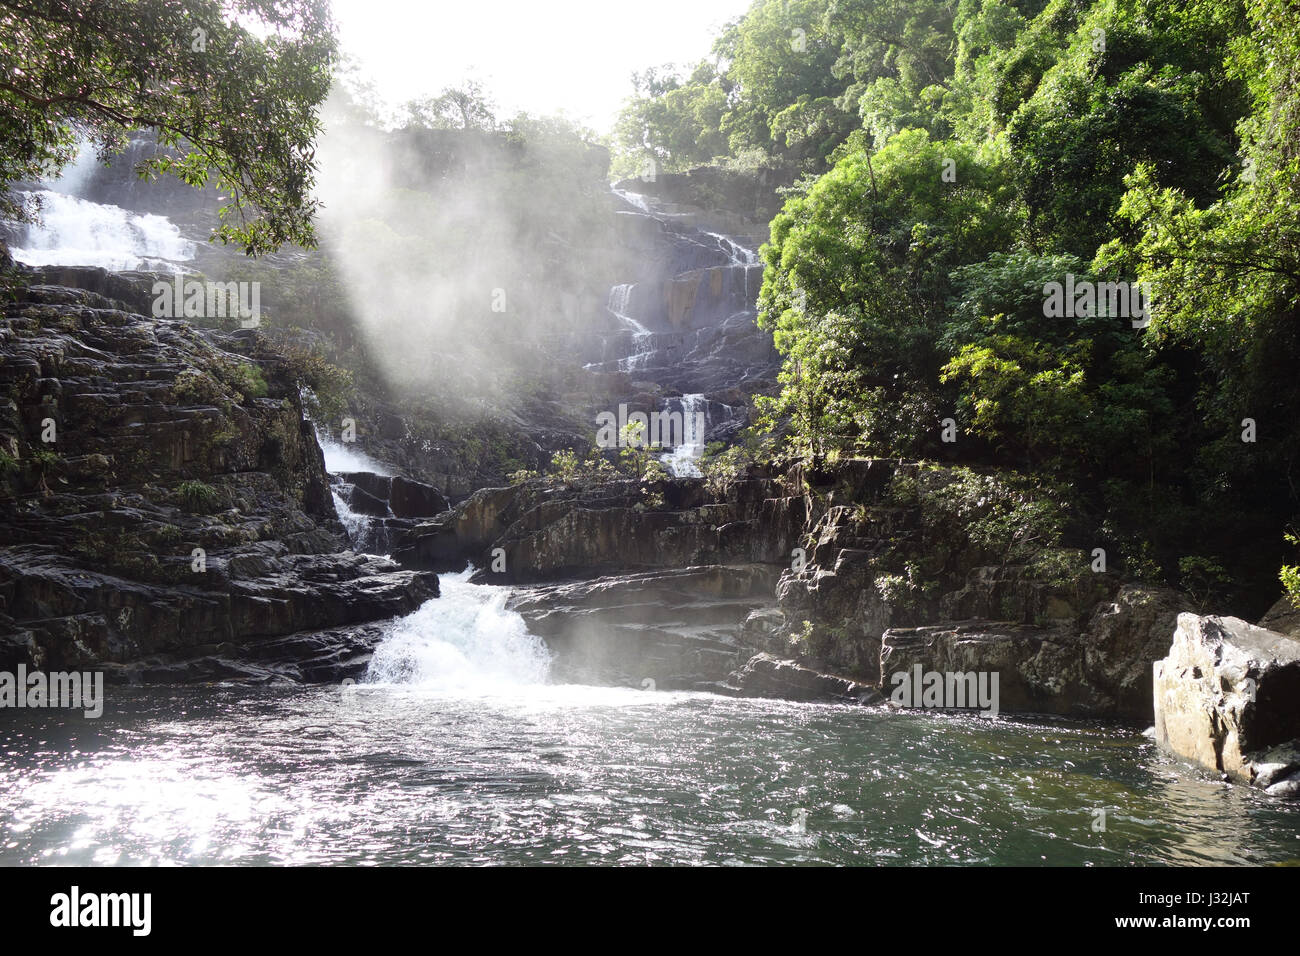 Home Rule Falls, Bloomfield Track, Daintree National Park, Queensland, Australia - Stock Image